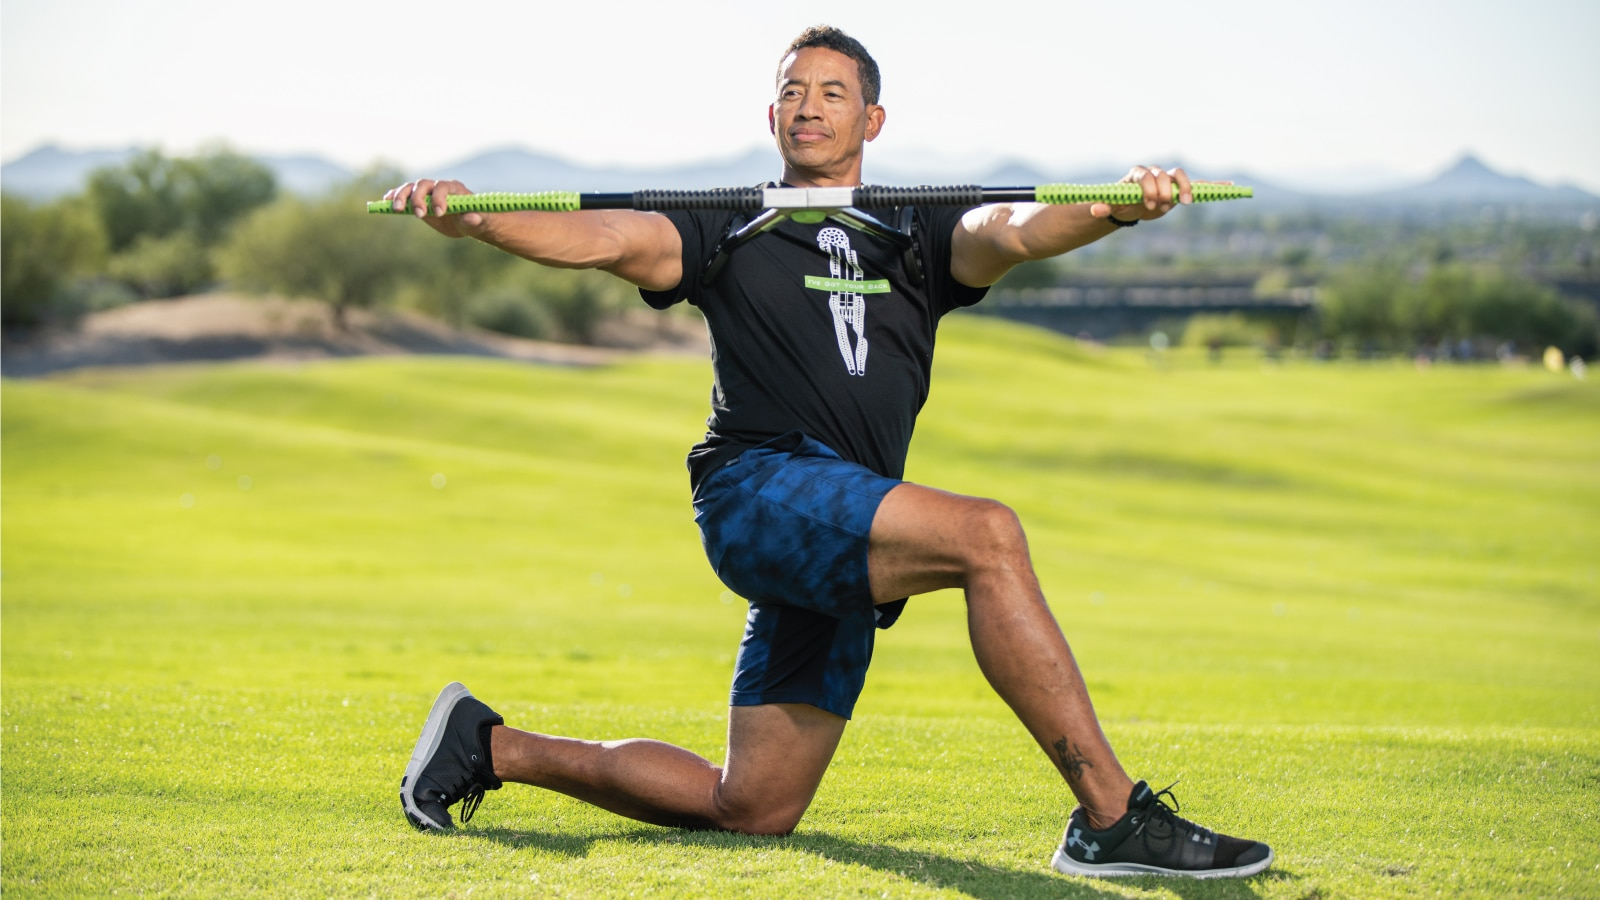 TrueTurnPro is a new way of rotational training.